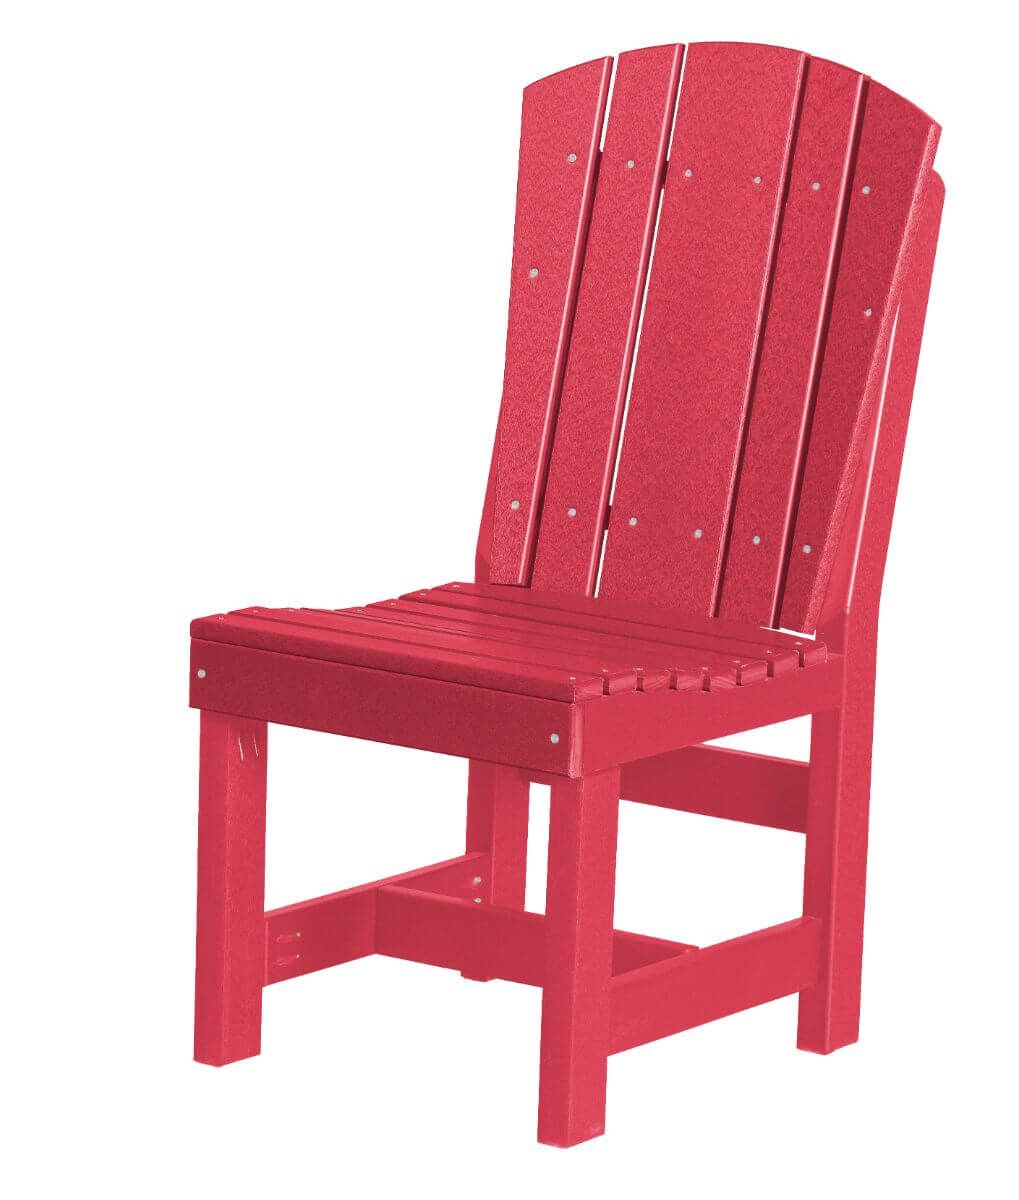 Pink Oristano Outdoor Dining Chair